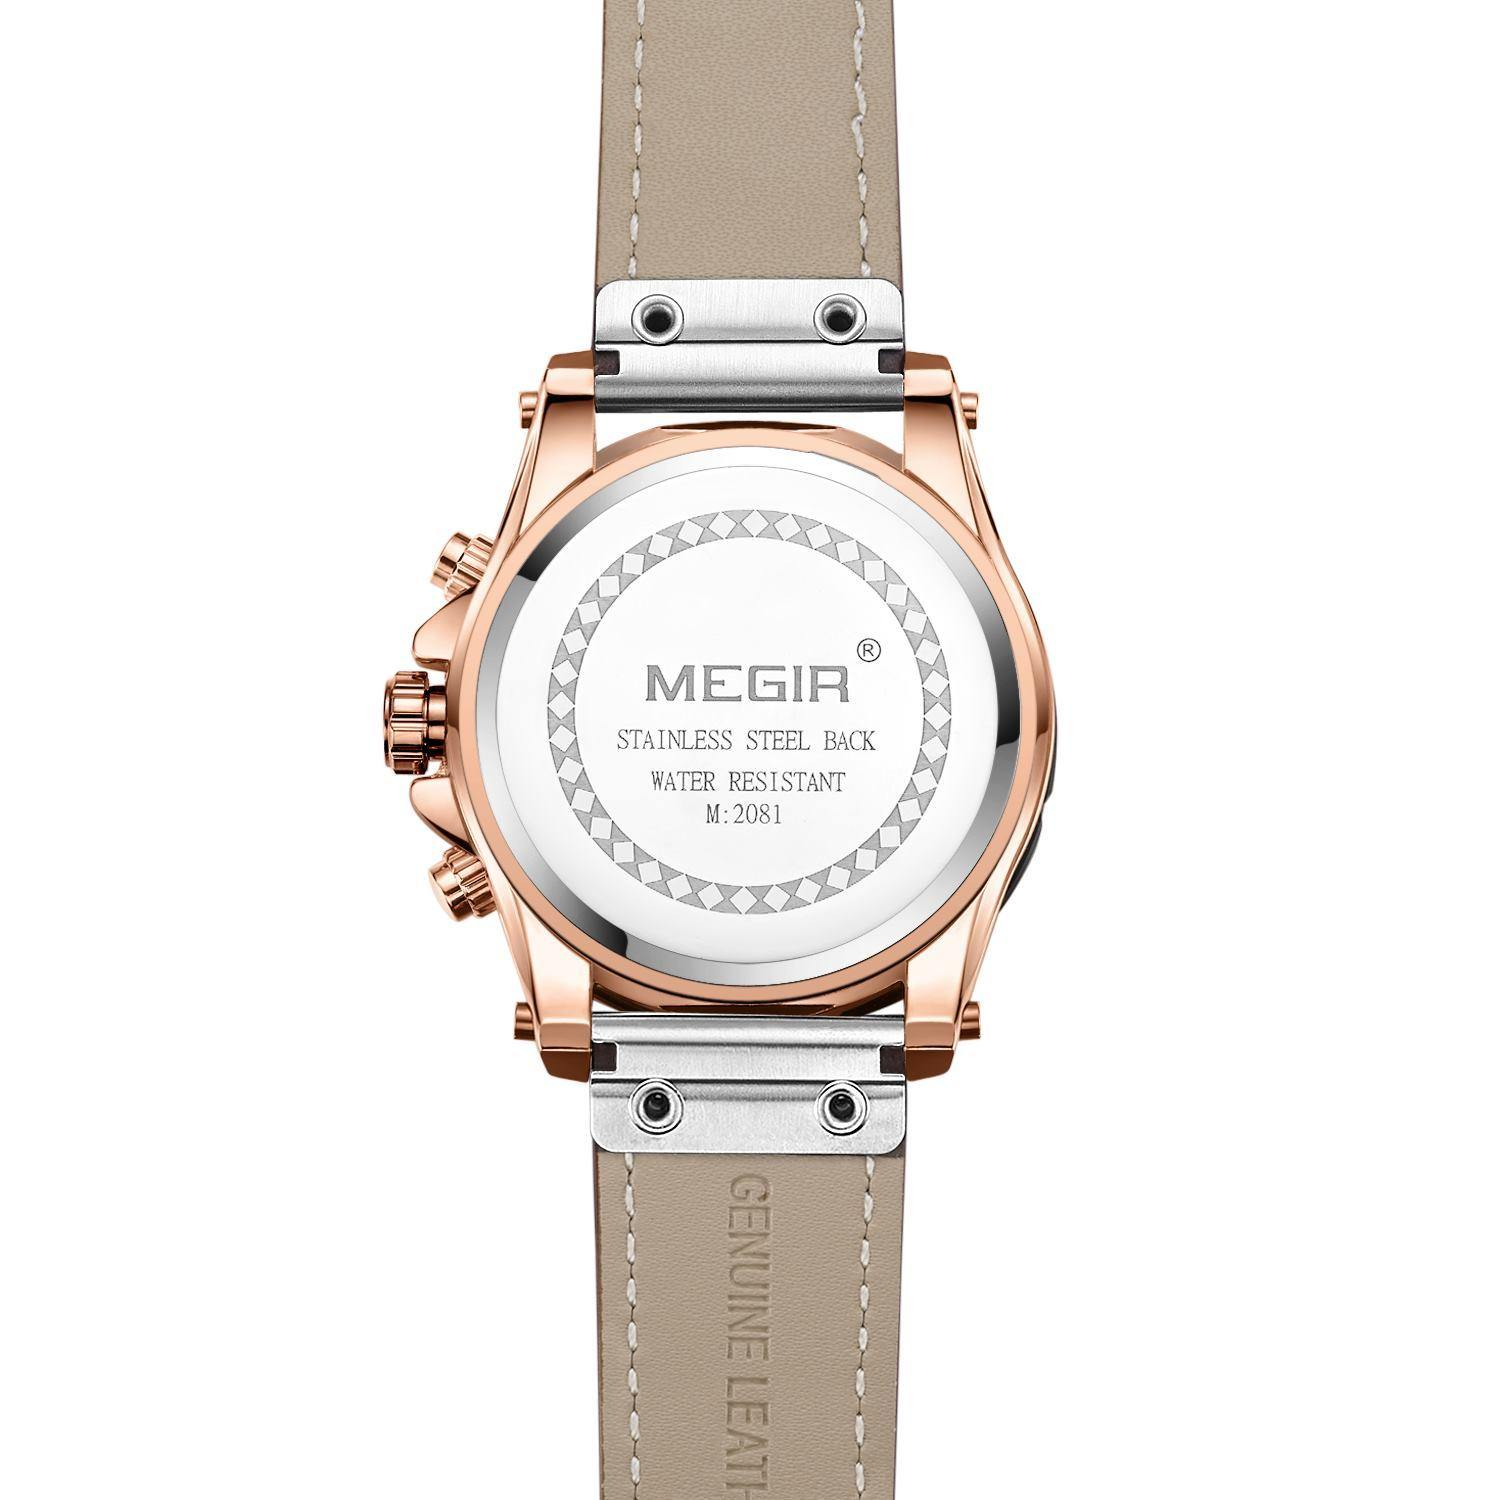 Megir Men Quartz Watch with Leather Band 2081 - MEGIR